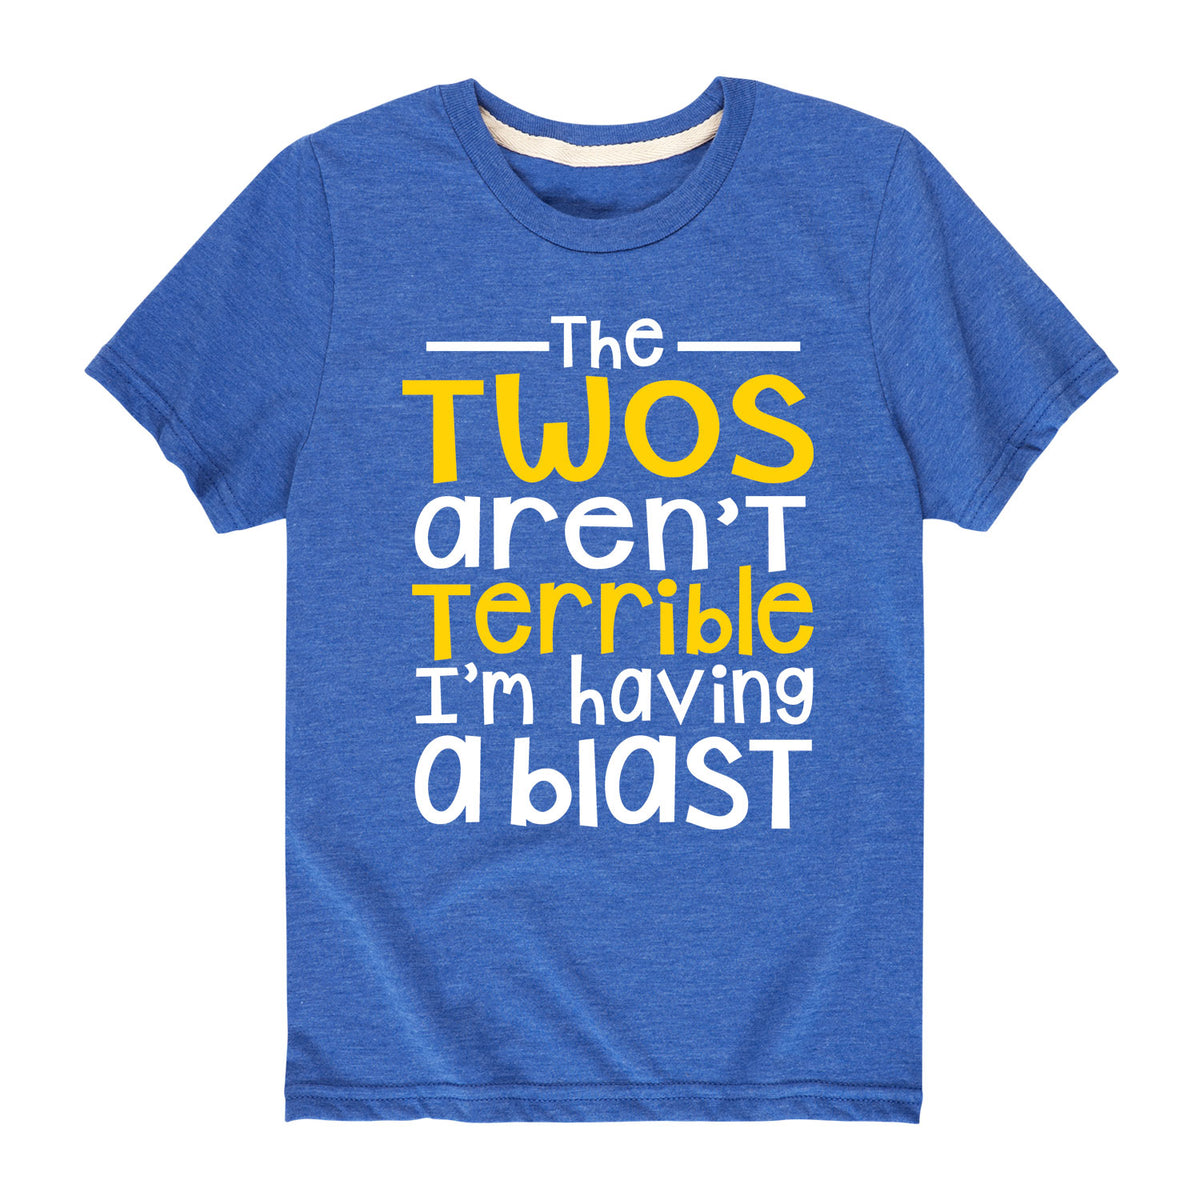 The Twos Aren't Terrible Having A Blast - Youth & Toddler Short Sleeve T-Shirt